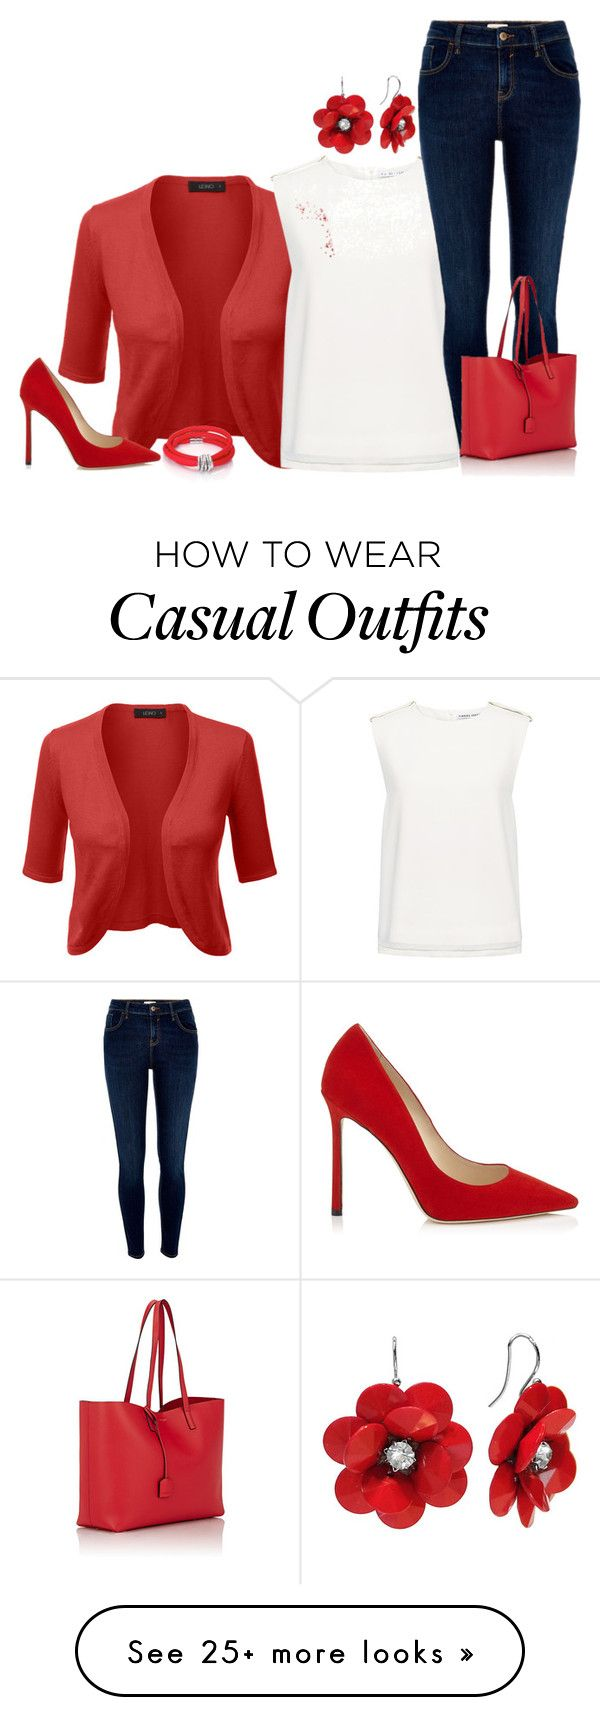 """Casual Work"" by kathydiaz86 on Polyvore featuring Finders Keepers, River Island, Yves Saint Laurent and de Grisogono"